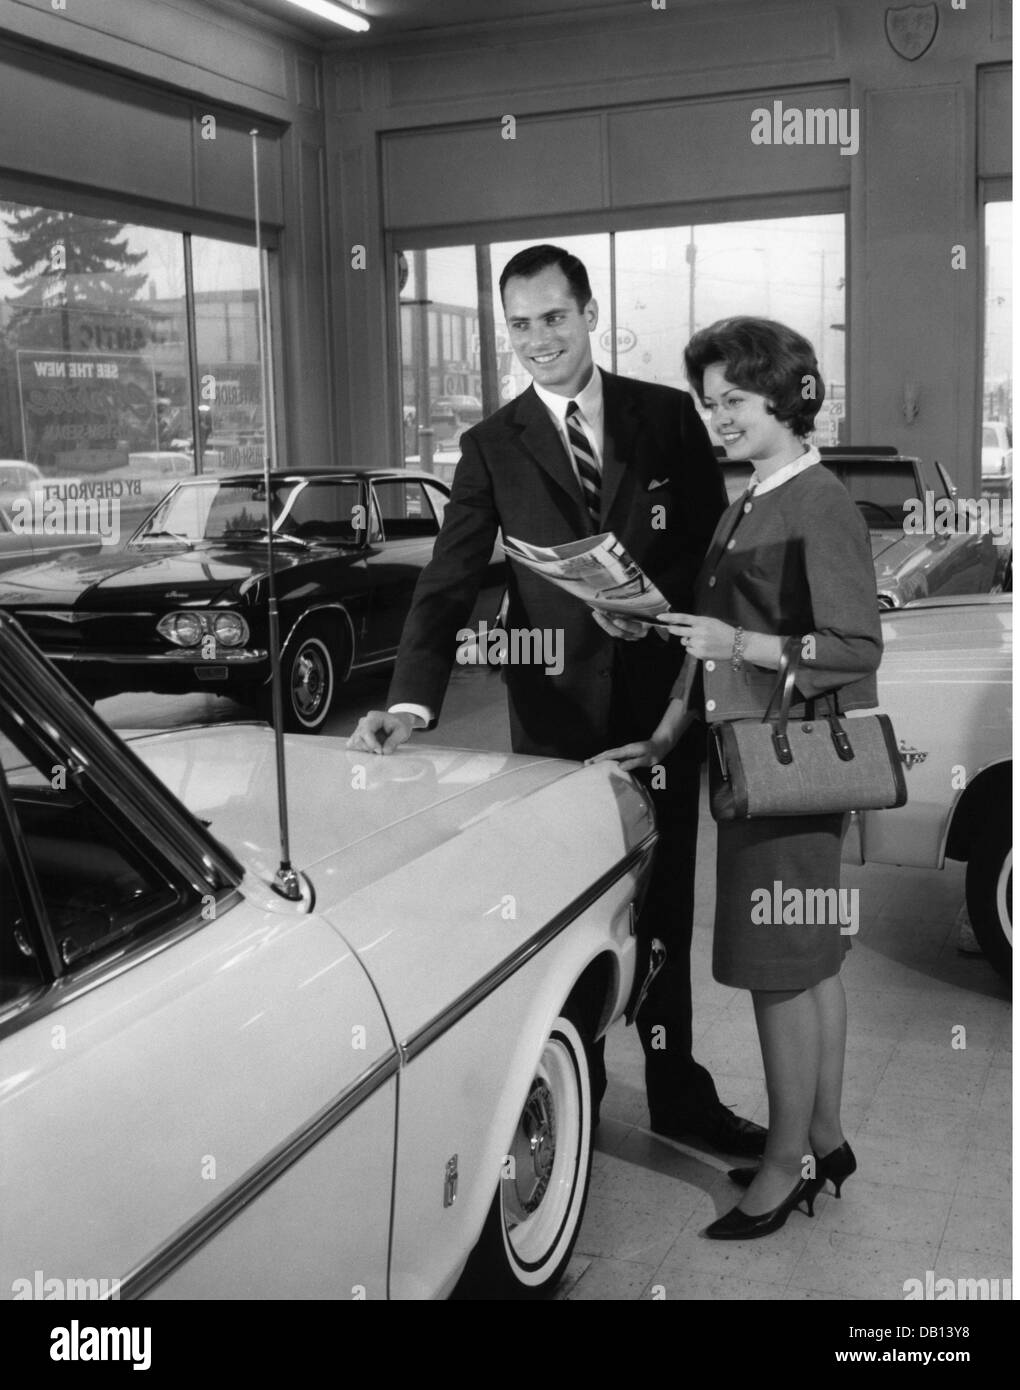 Trade Shops Young Couple At Car Dealer Usa 1960s 20th